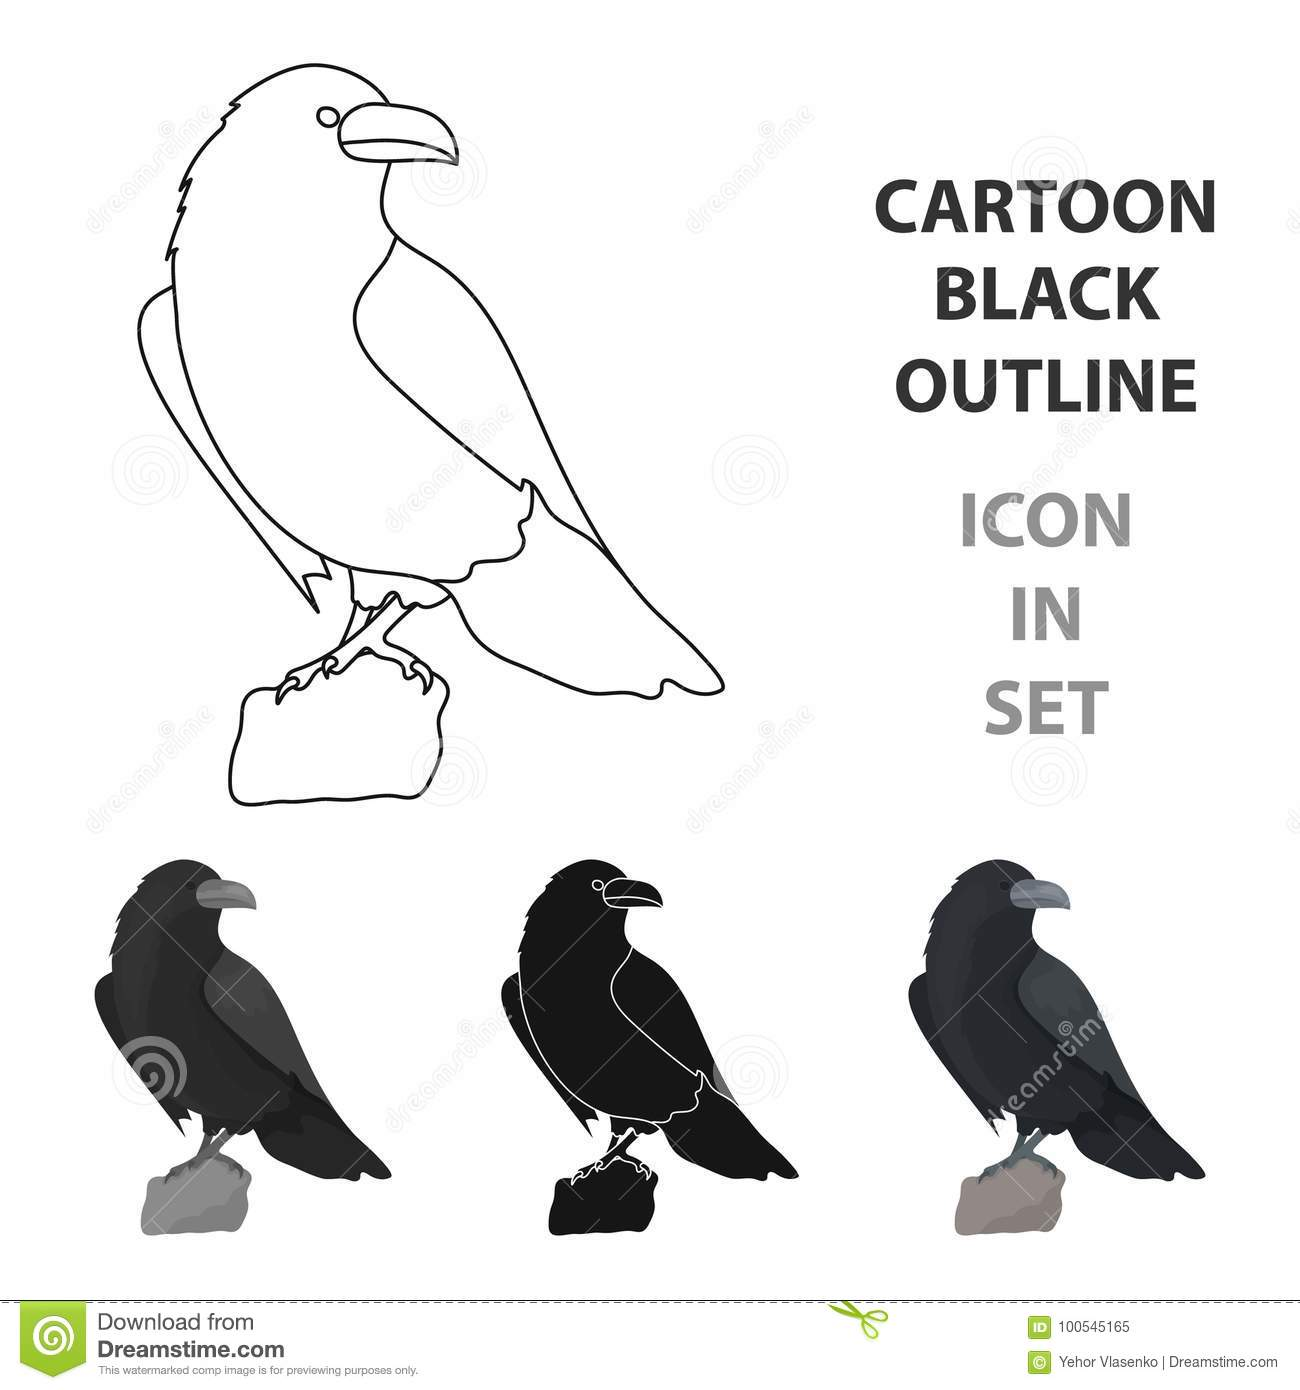 Crow of viking god icon in cartoon style isolated on white crow of viking god icon in cartoon style isolated on white background vikings symbol stock vector illustration biocorpaavc